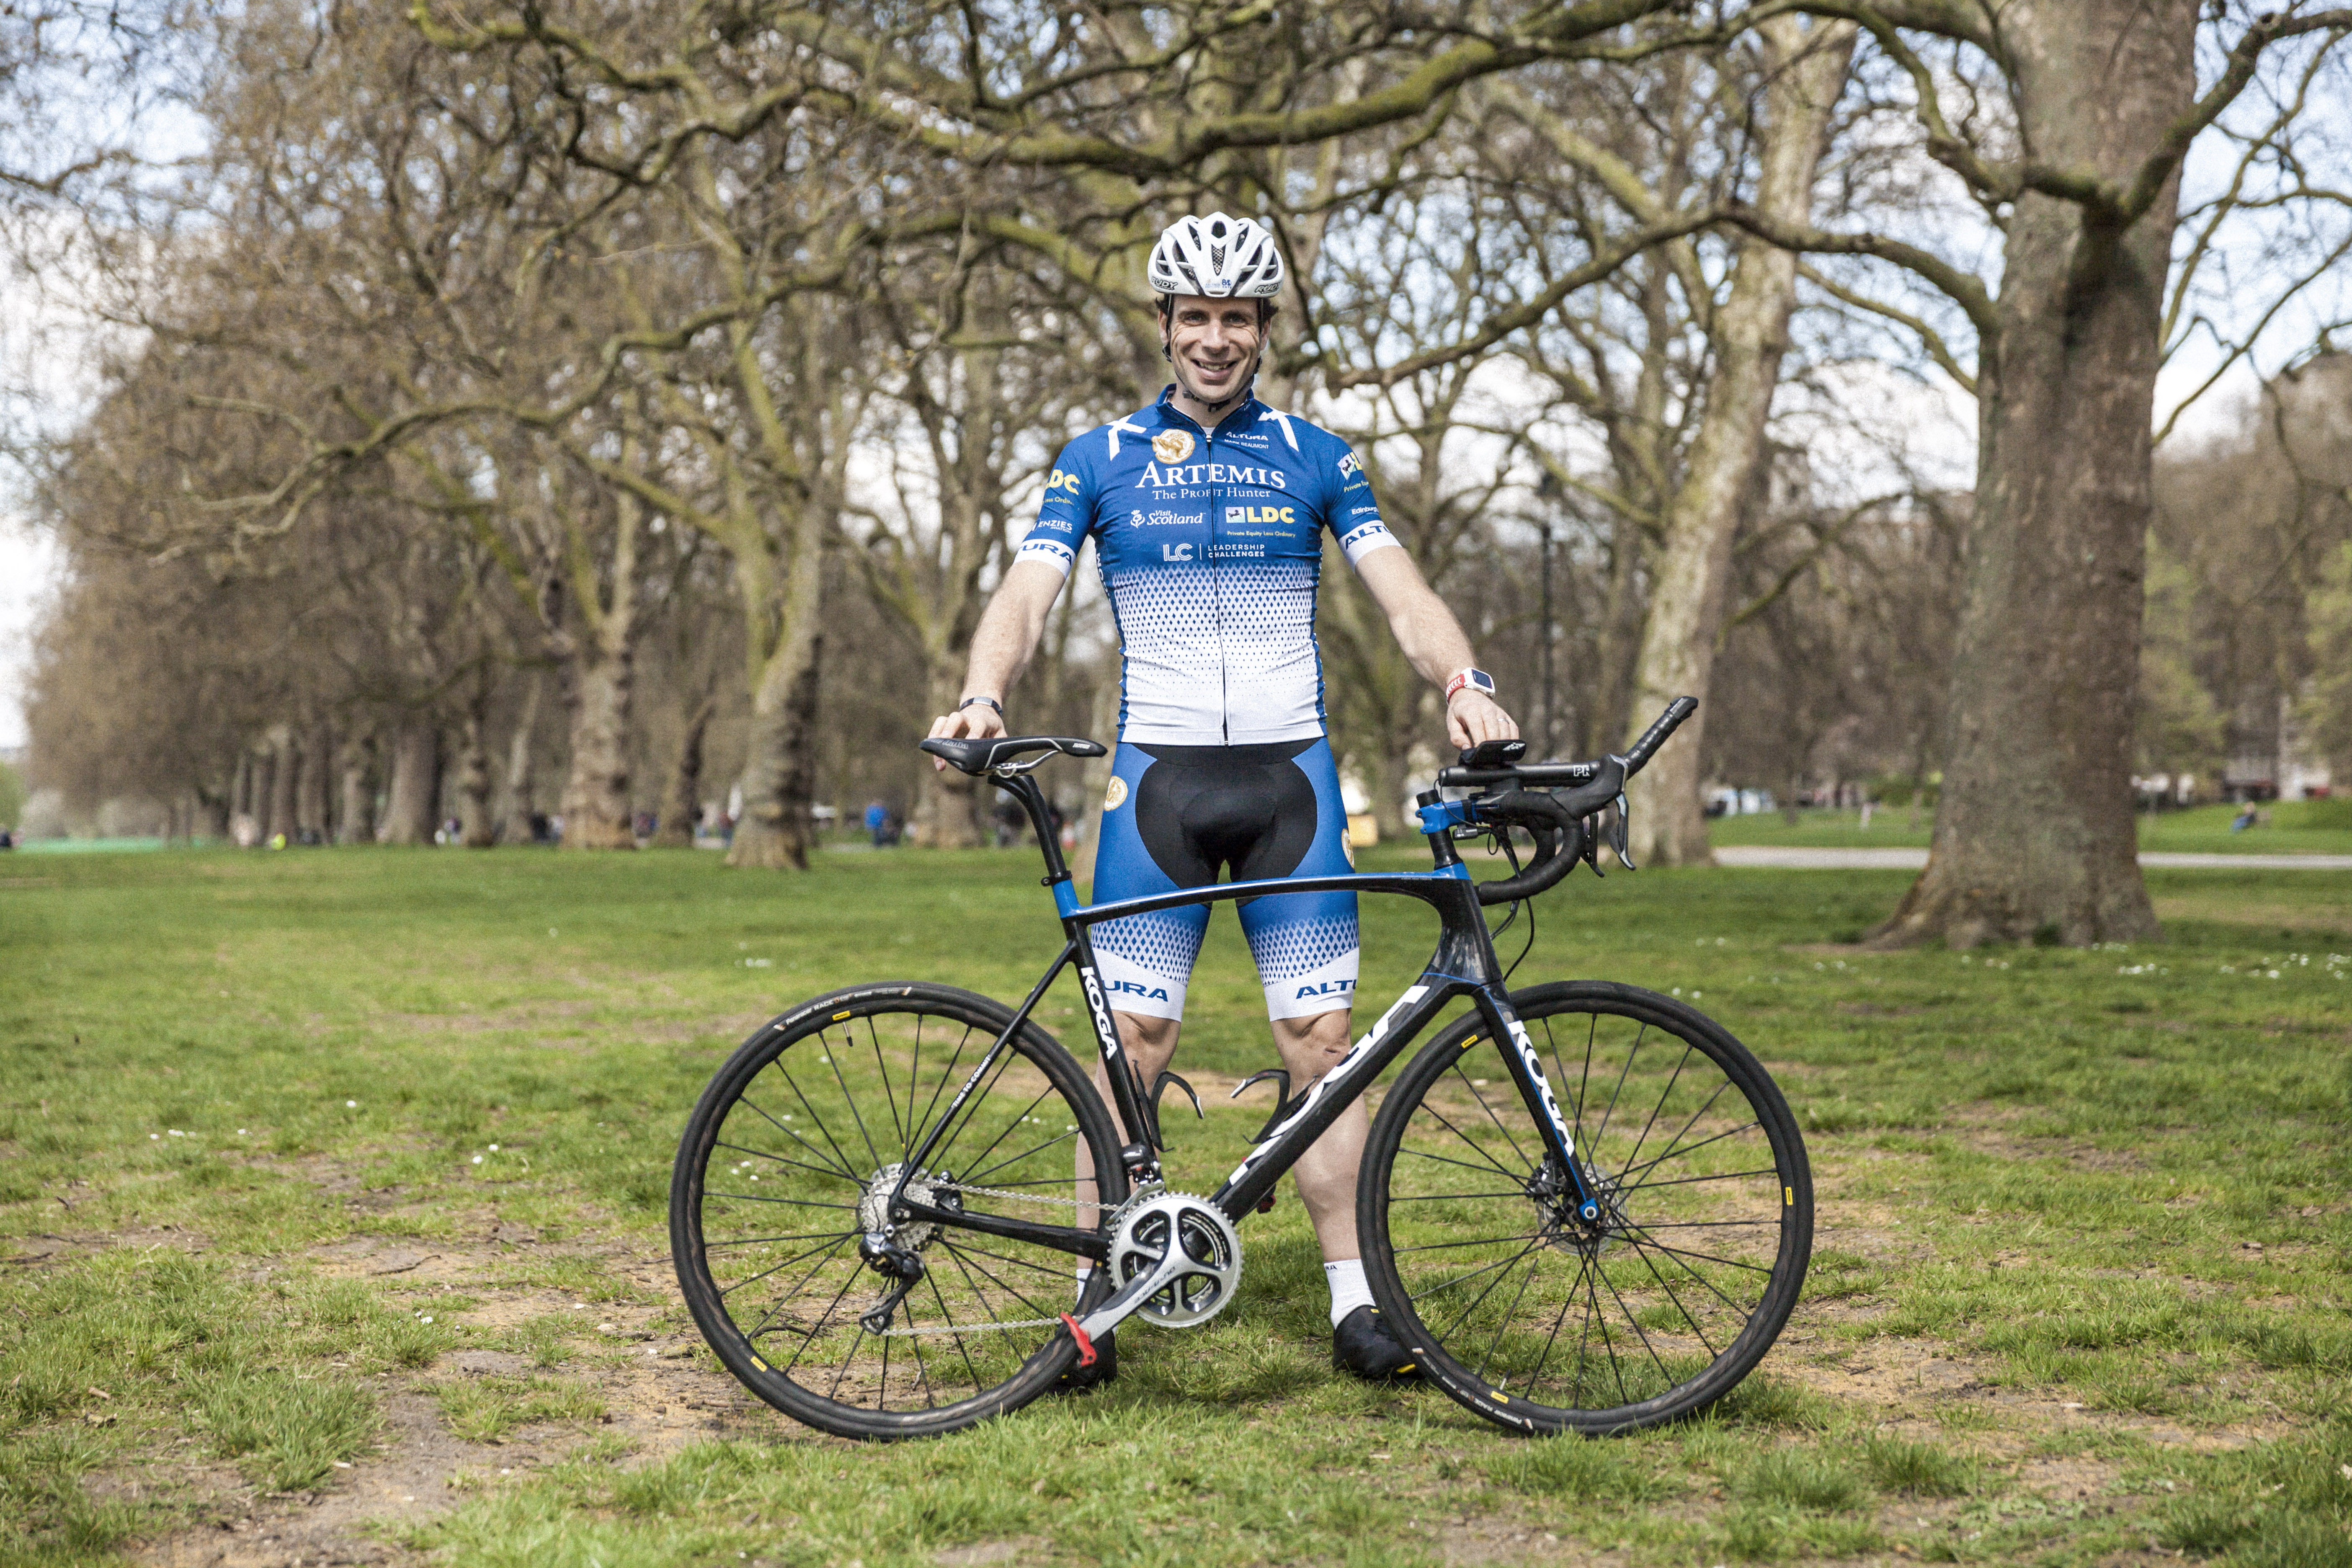 Artemis World Cycle | Press Coverage & Interviews